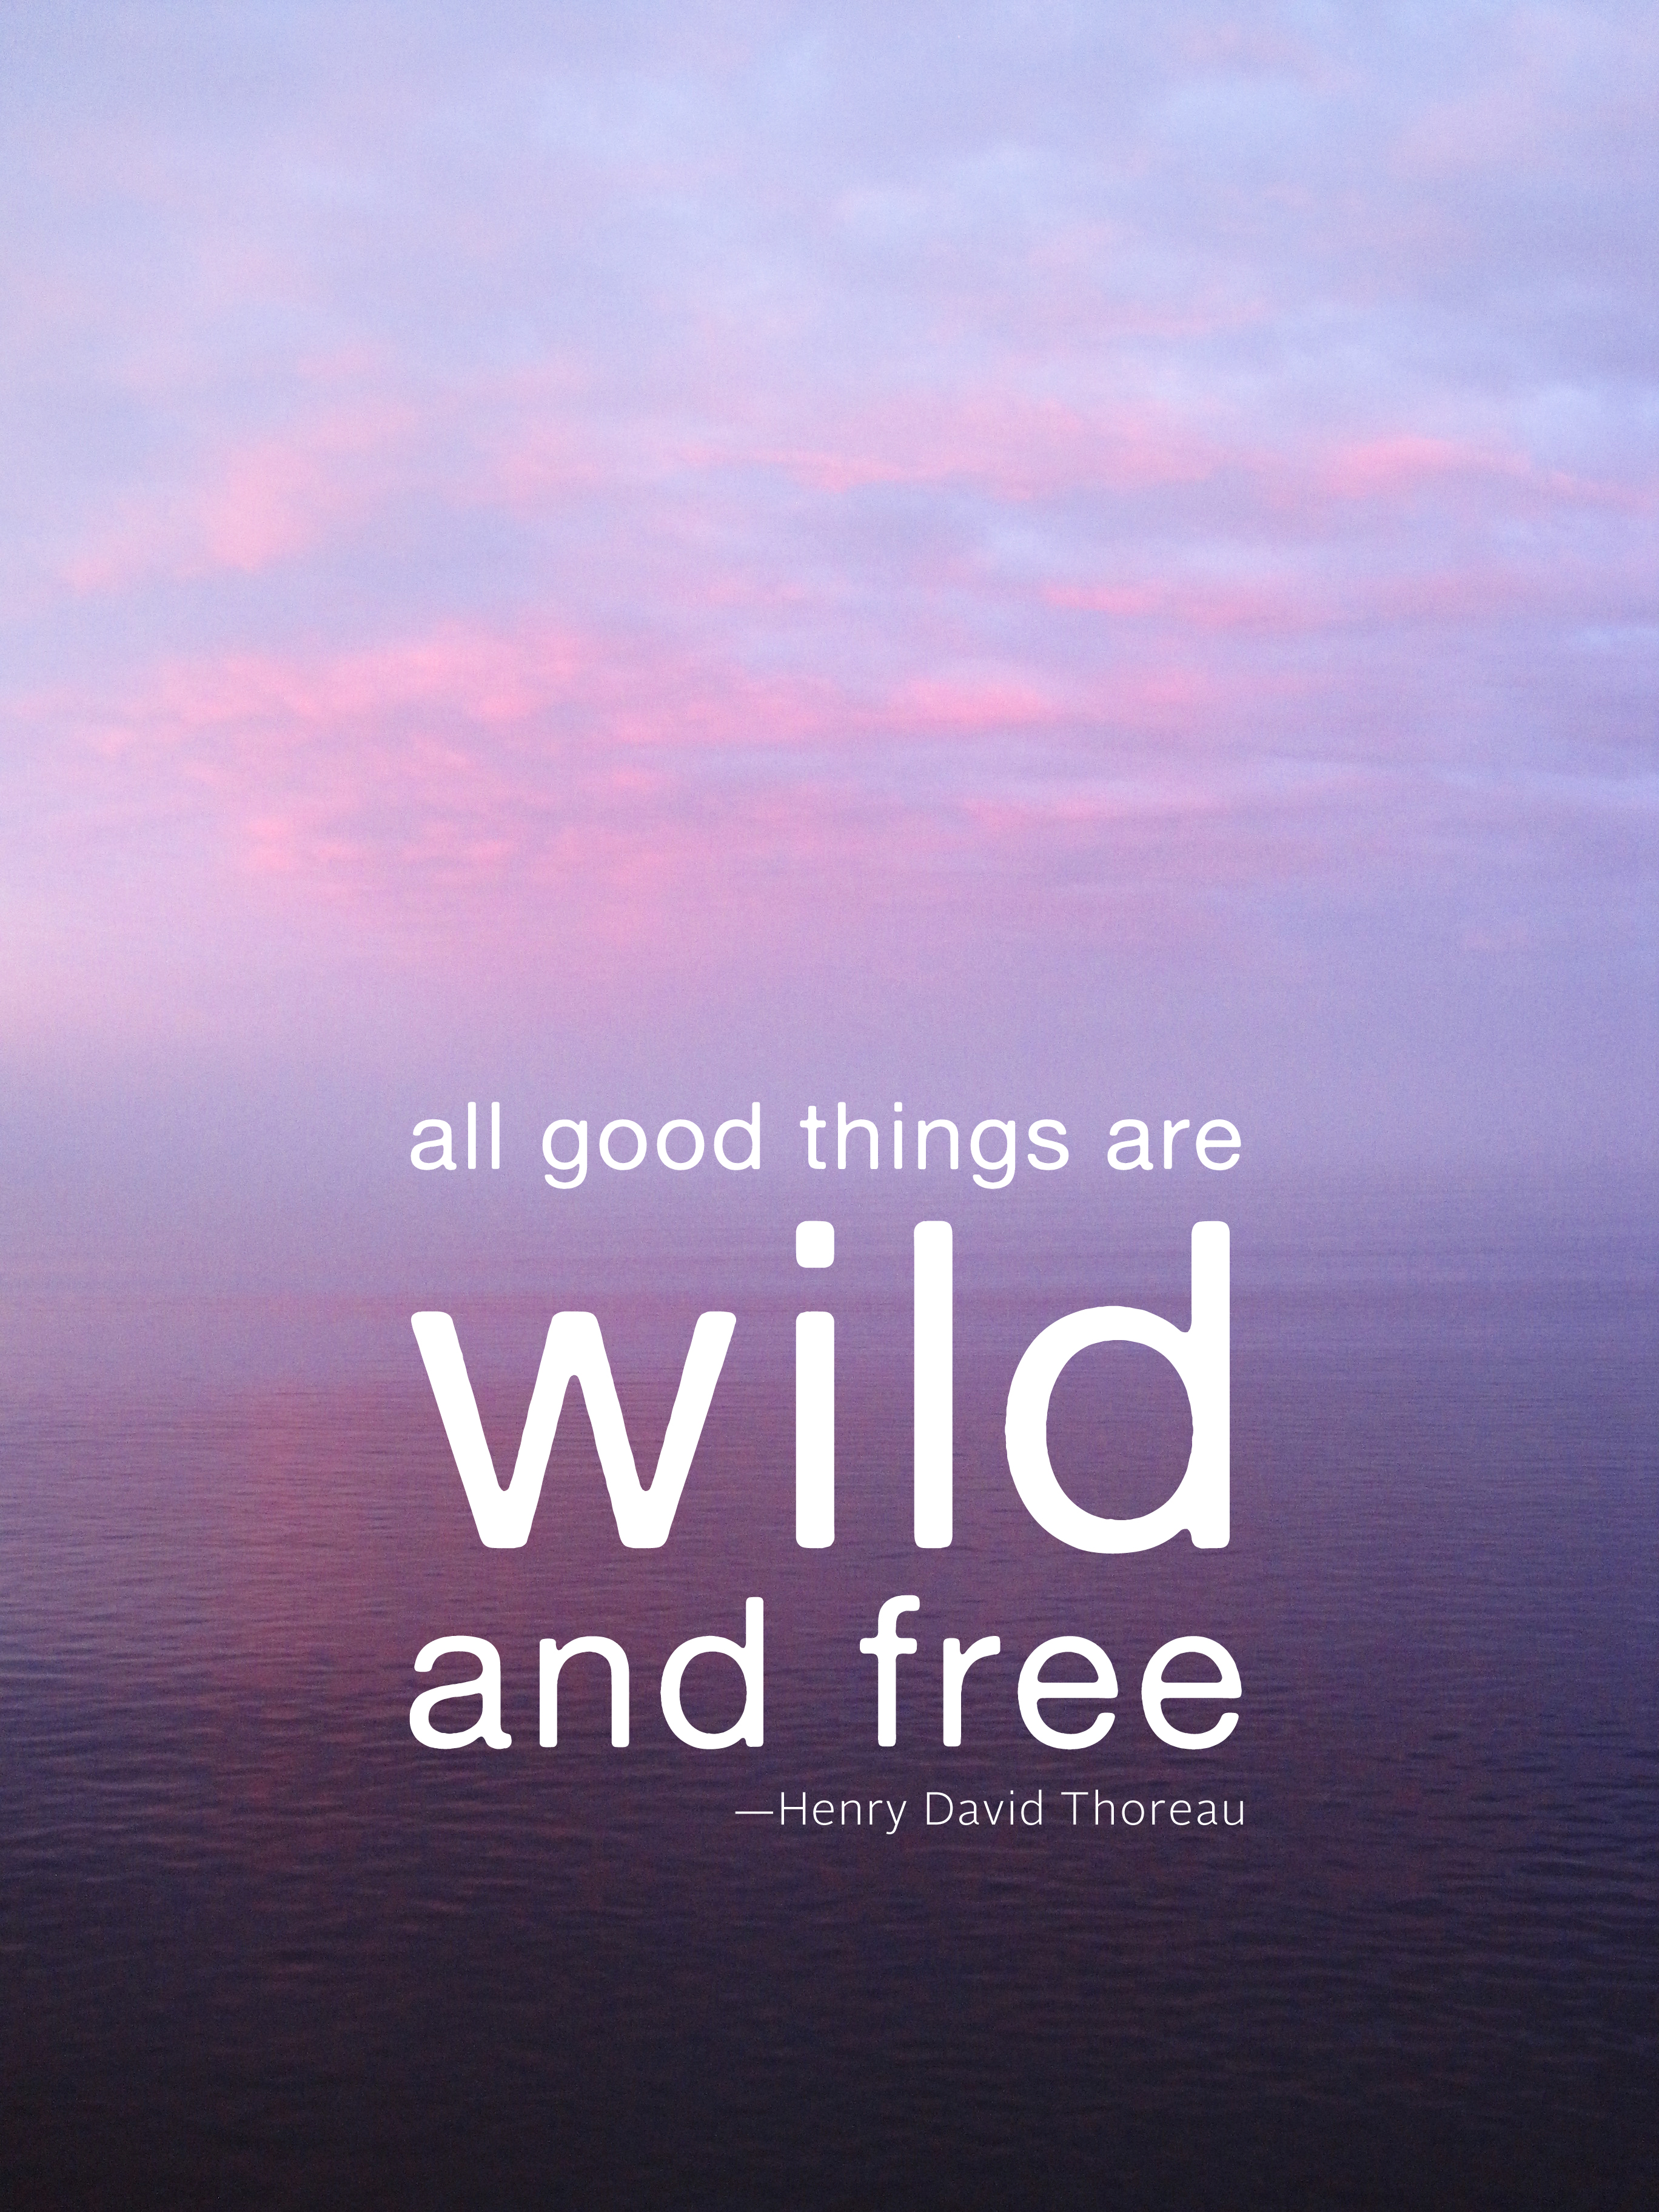 Quotes About Being Wild Quotes about Being free and wild (15 quotes) Quotes About Being Wild